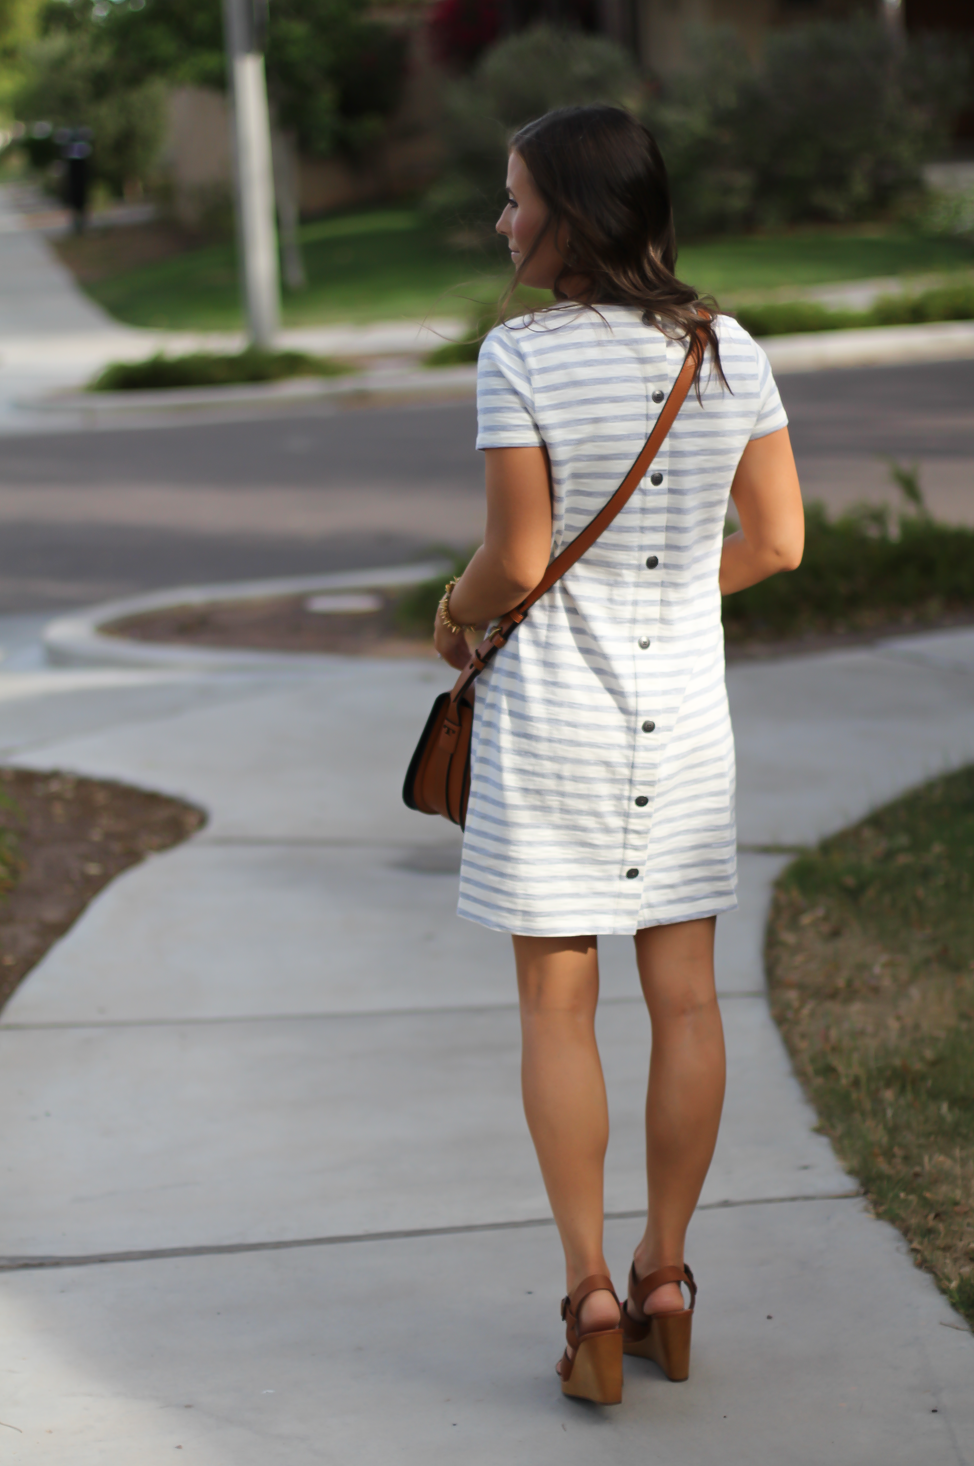 Grey Striped Button Back Short Sleeve Dress, Cognac Leather Wedge Sandals, Cognac Saddlebag, Madewell, Tory Burch 15